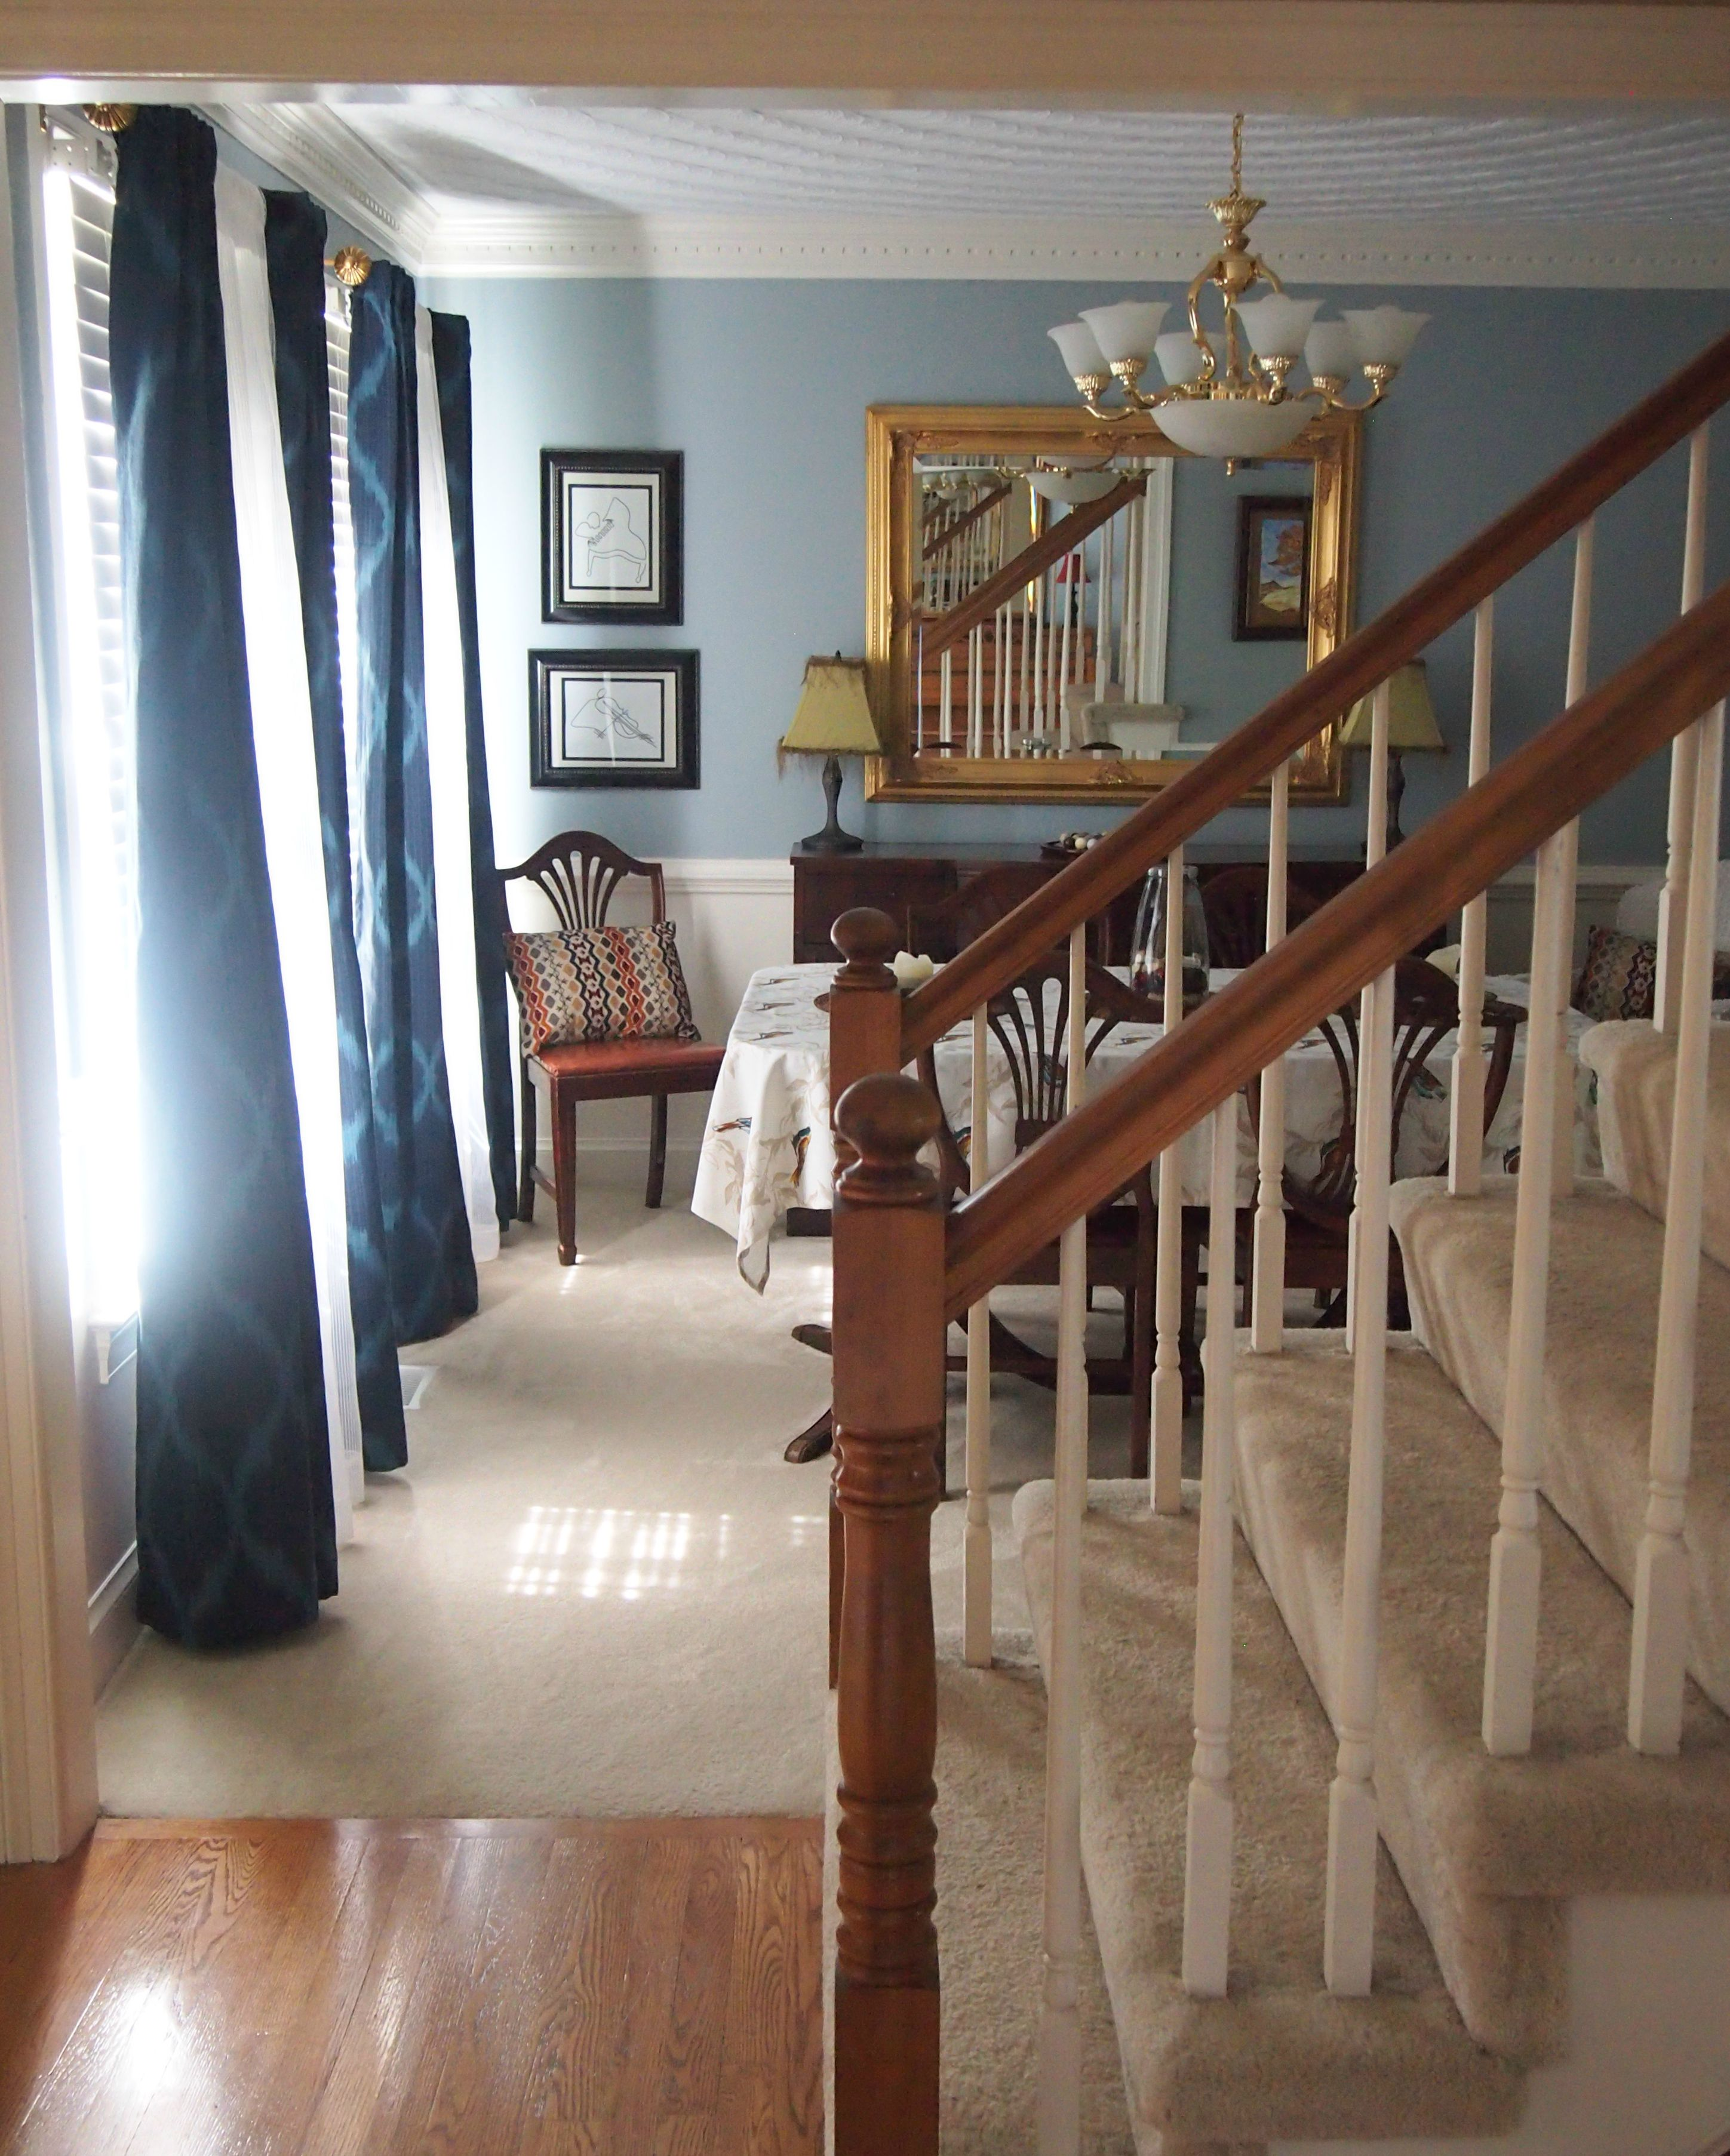 Behr Dining Room Colors: Behr Flint Smoke. Definitely More Blue Than Grey. Blue And